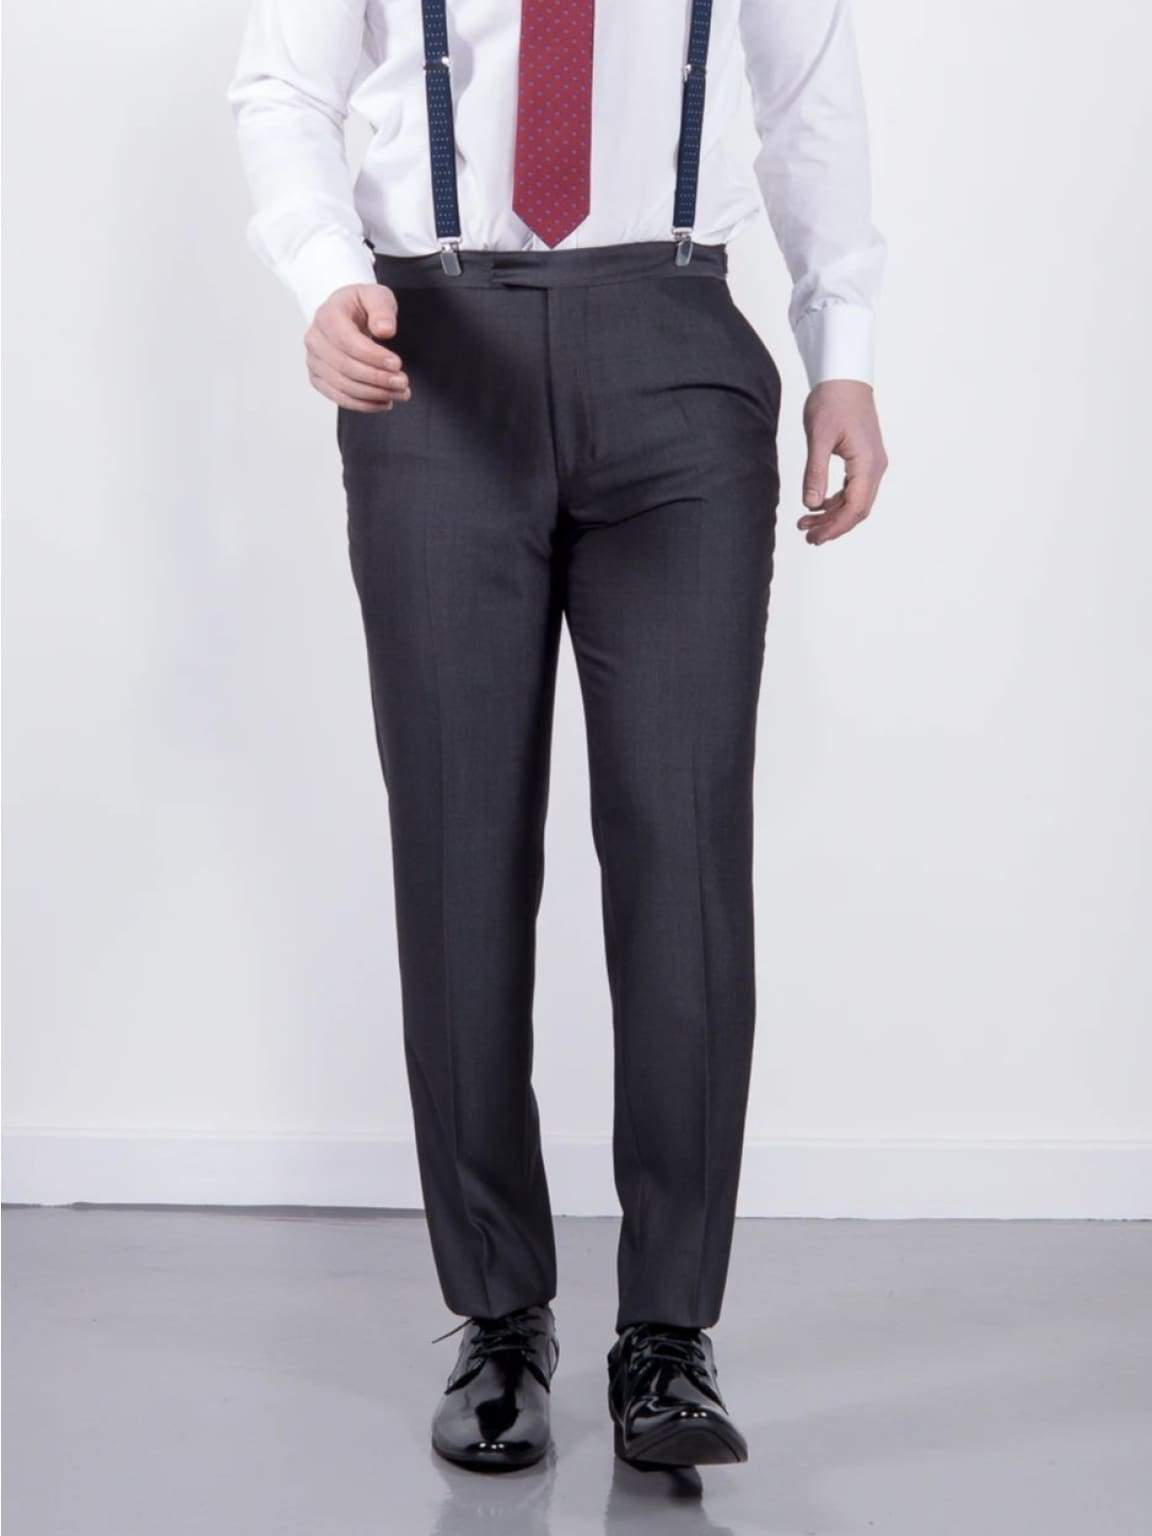 Wedding Special Torre Mohair Tailored Fit Charcoal Suit Trousers - 32S - Suit & Tailoring